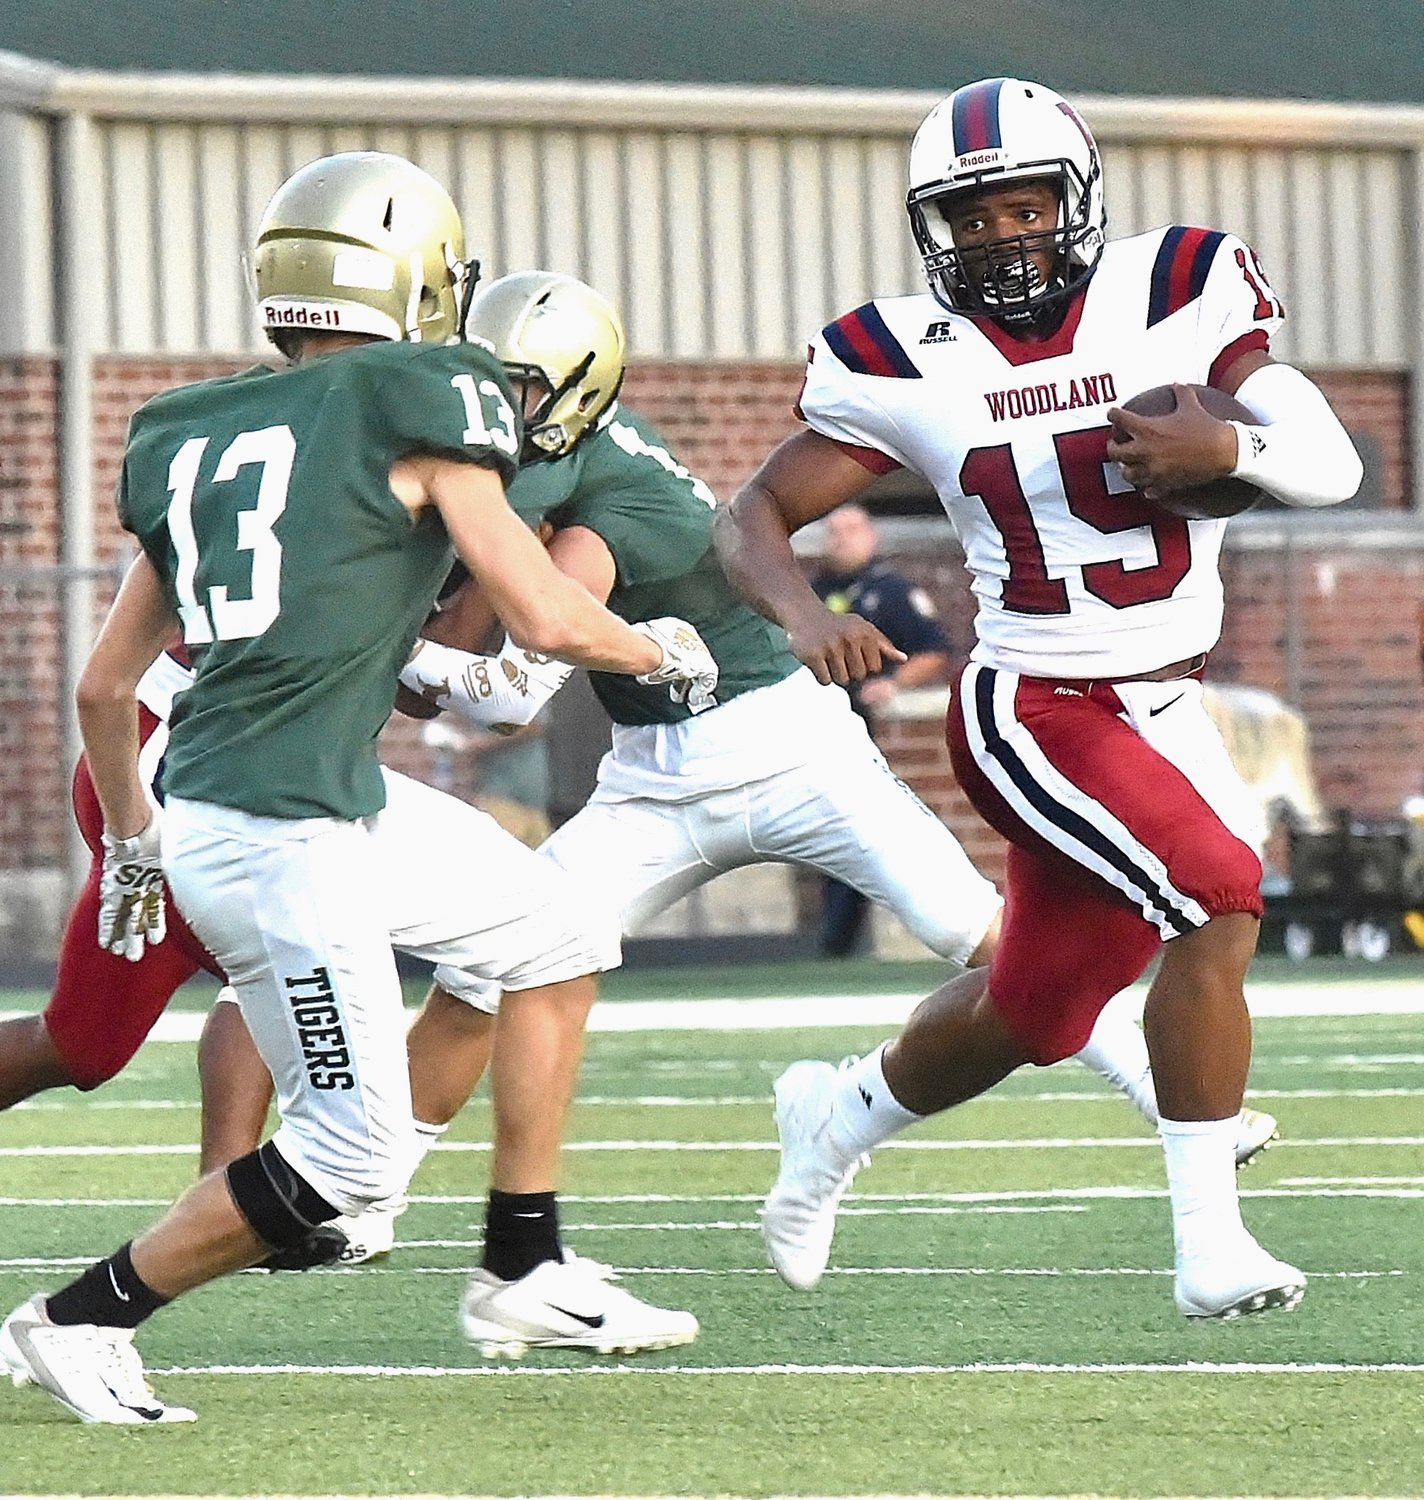 Woodland quarterback J.T. Thomas carries the ball as Adairsville's Doss Dudley defends during Friday's scrimmage at Tiger Stadium.